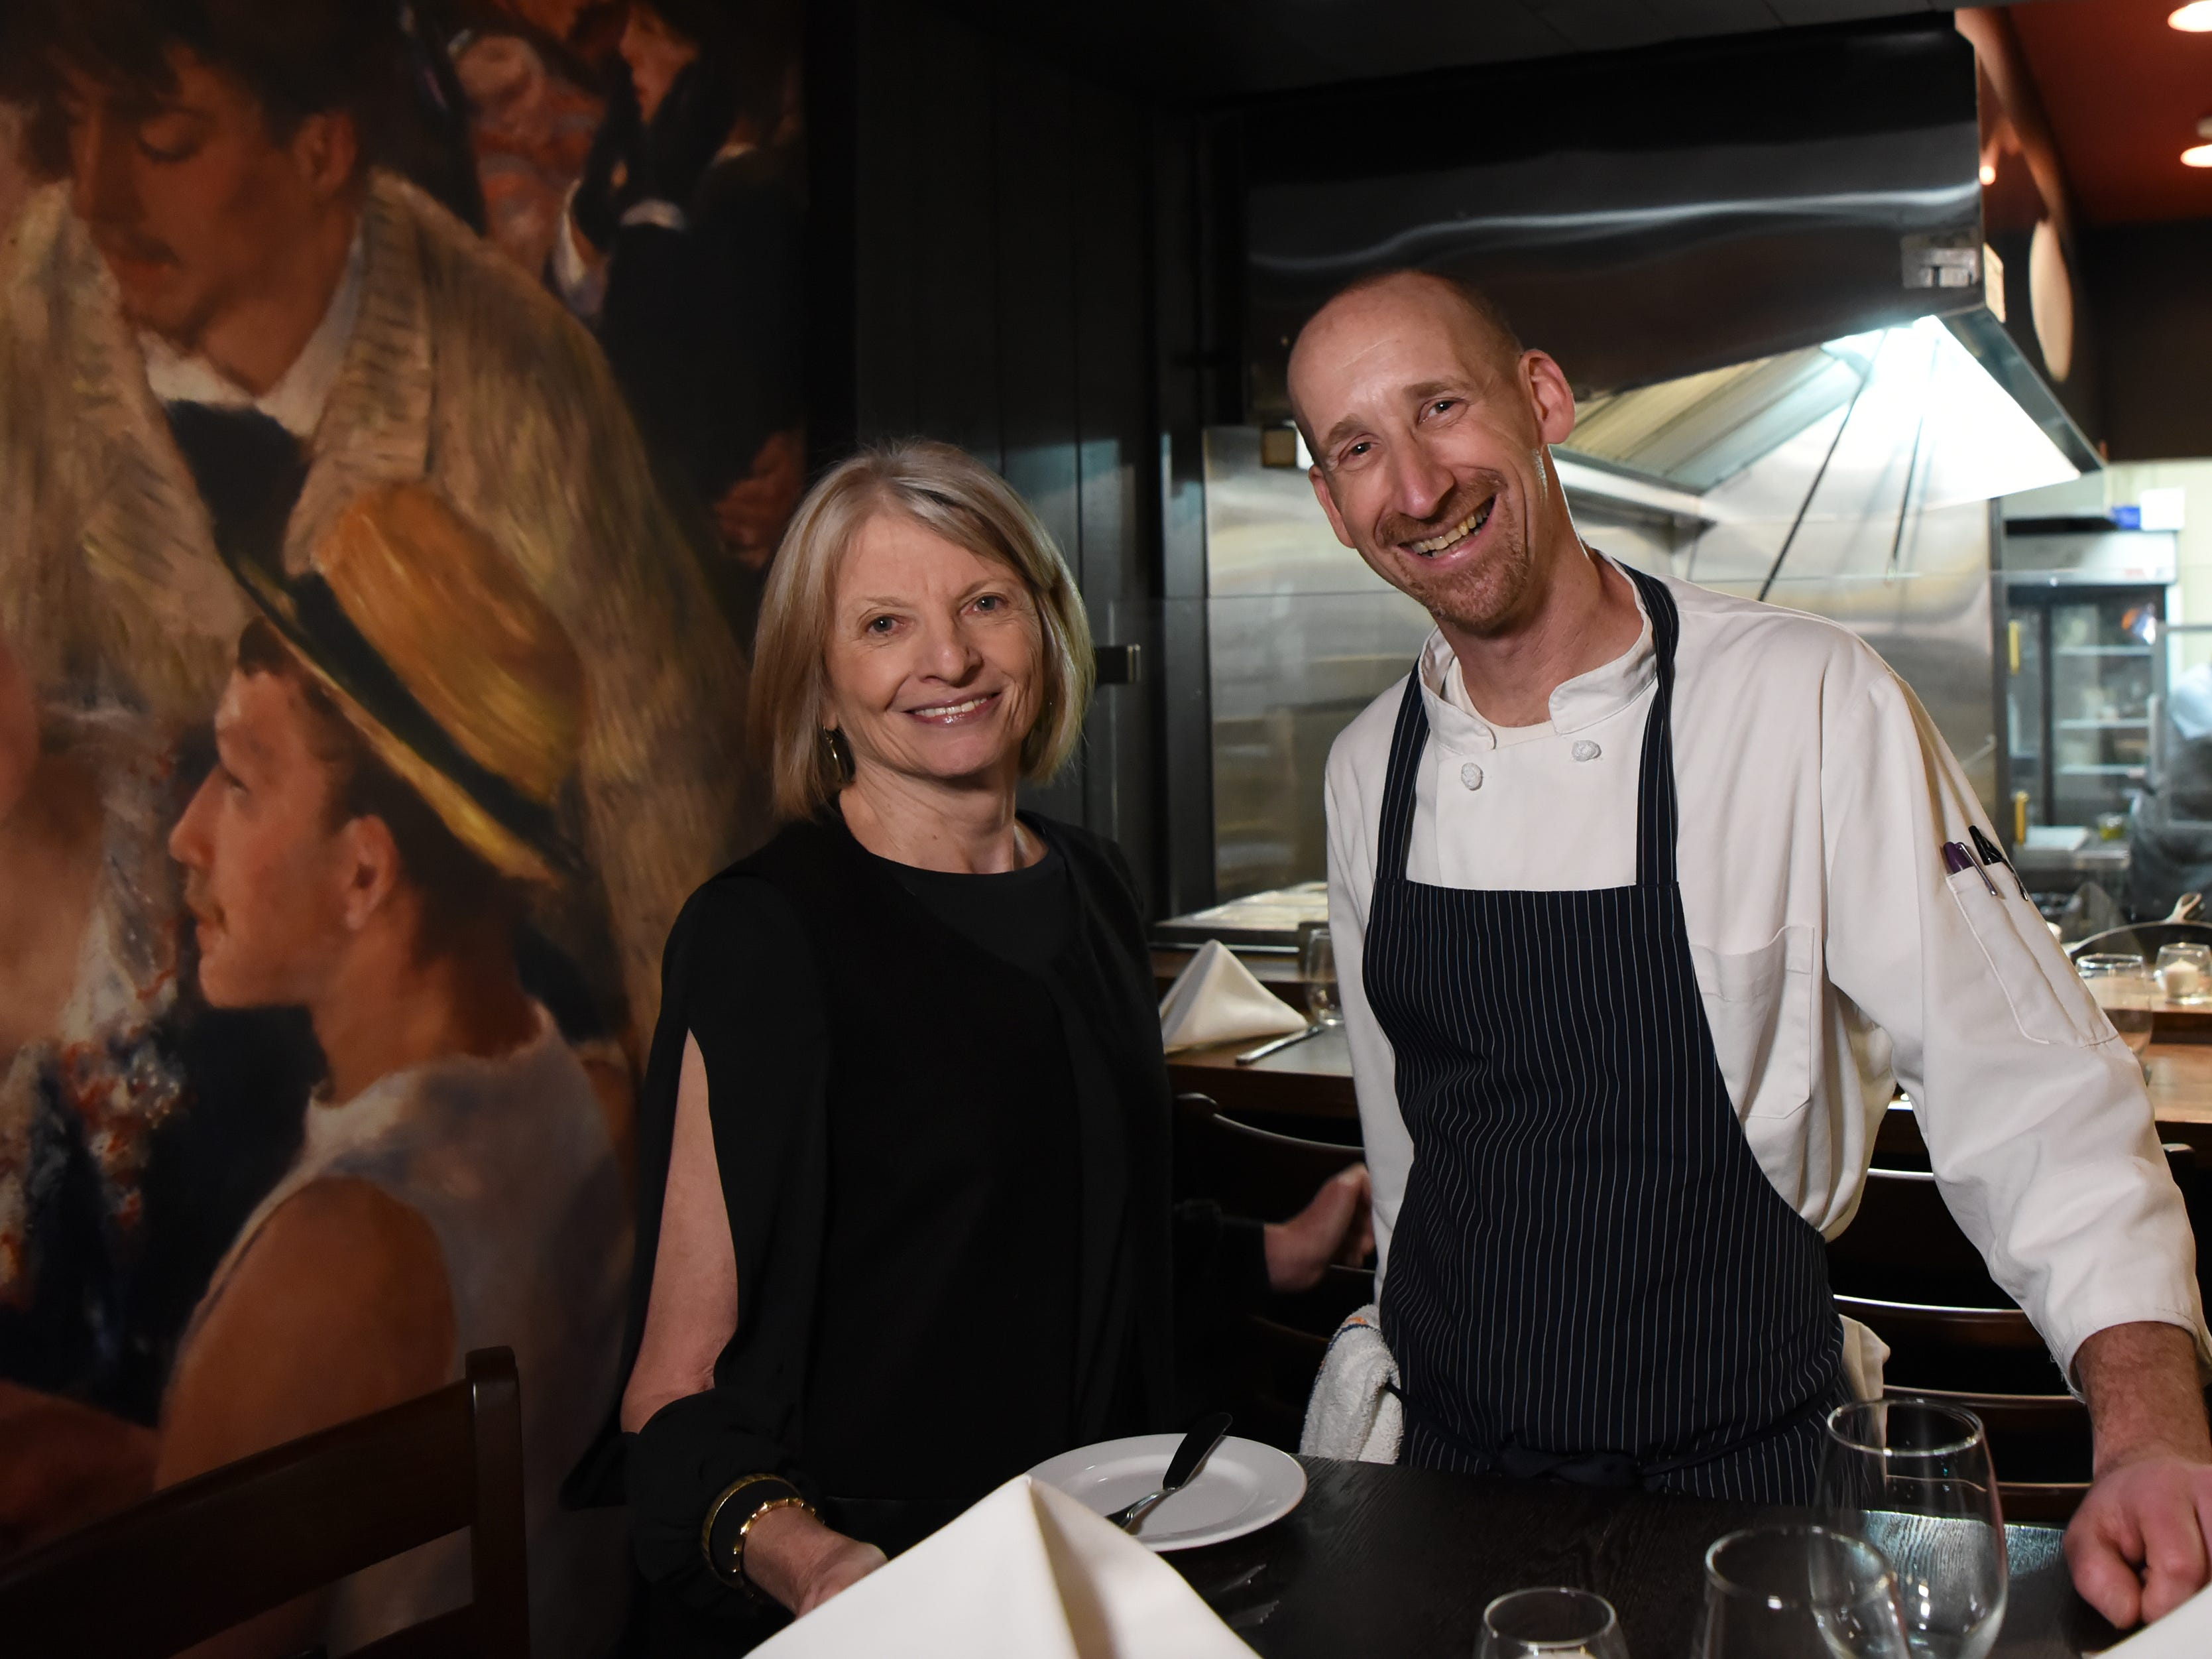 Food editor Esther Davidowitz and Chef/Owner Ross Goldflam at the dinner with Esther at Technique, a French restaurant in Westwood on Thursday February 7, 2019.